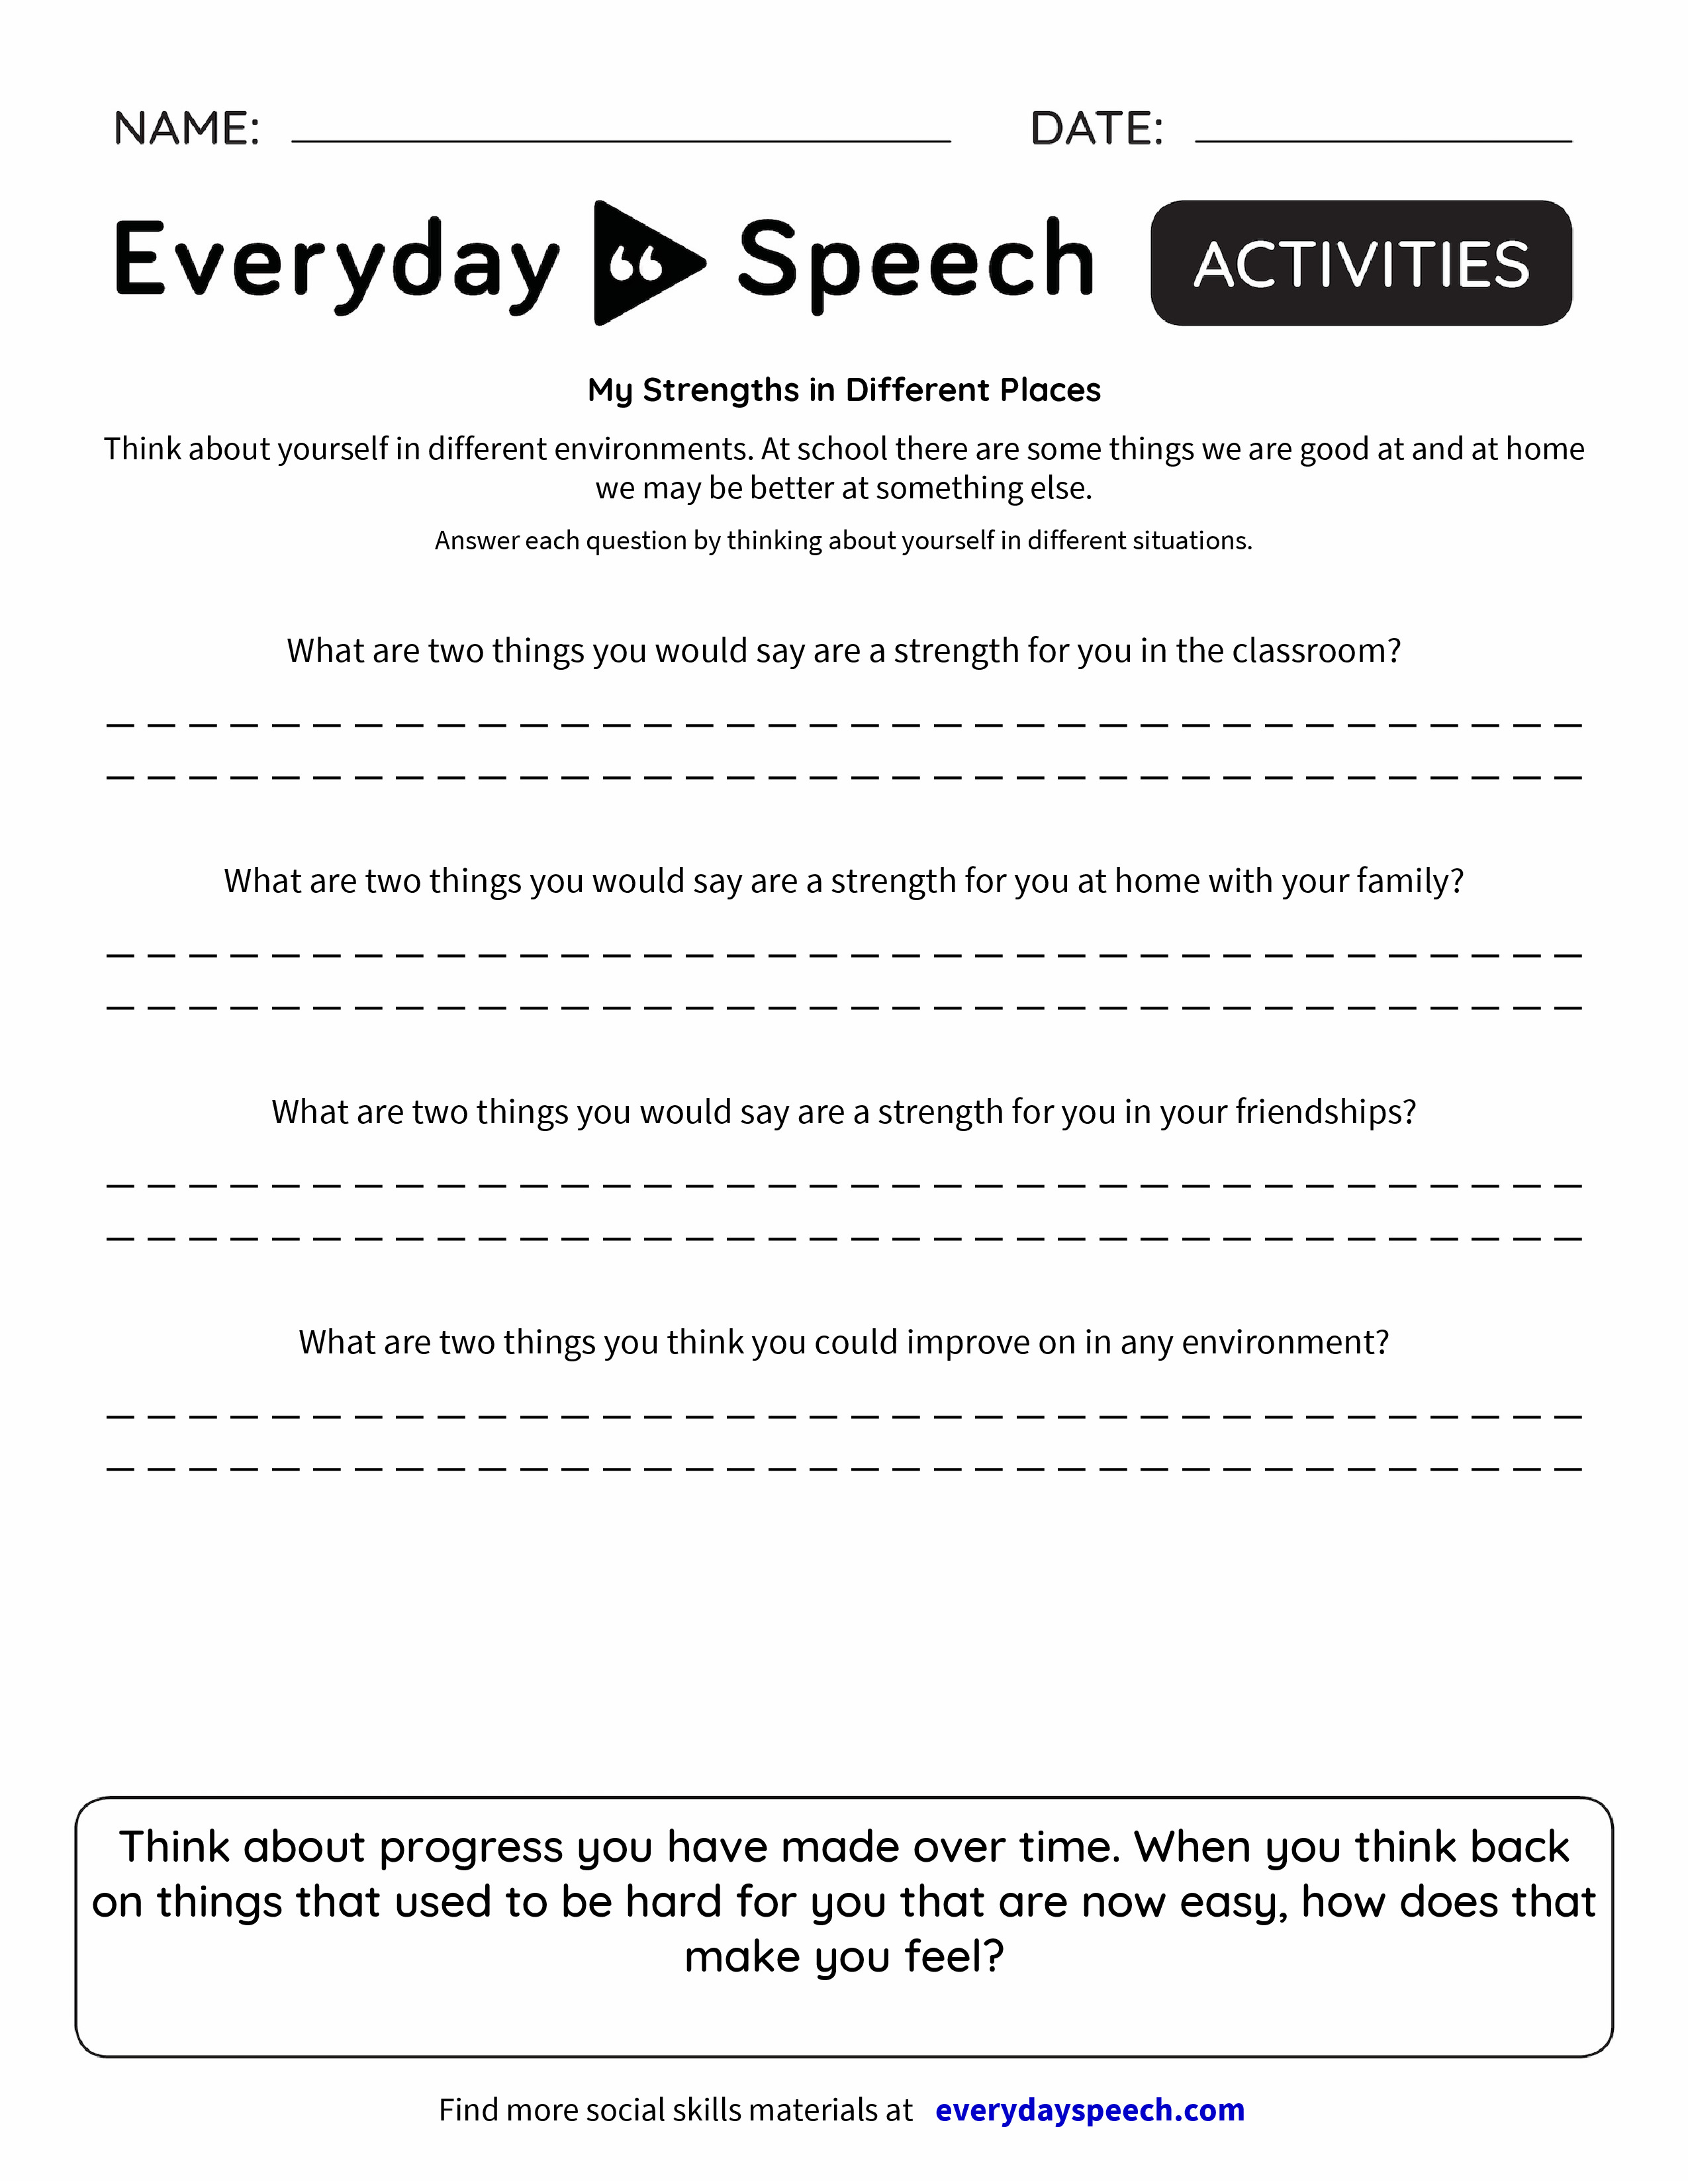 My Strengths in Different Places - Everyday Speech - Everyday Speech